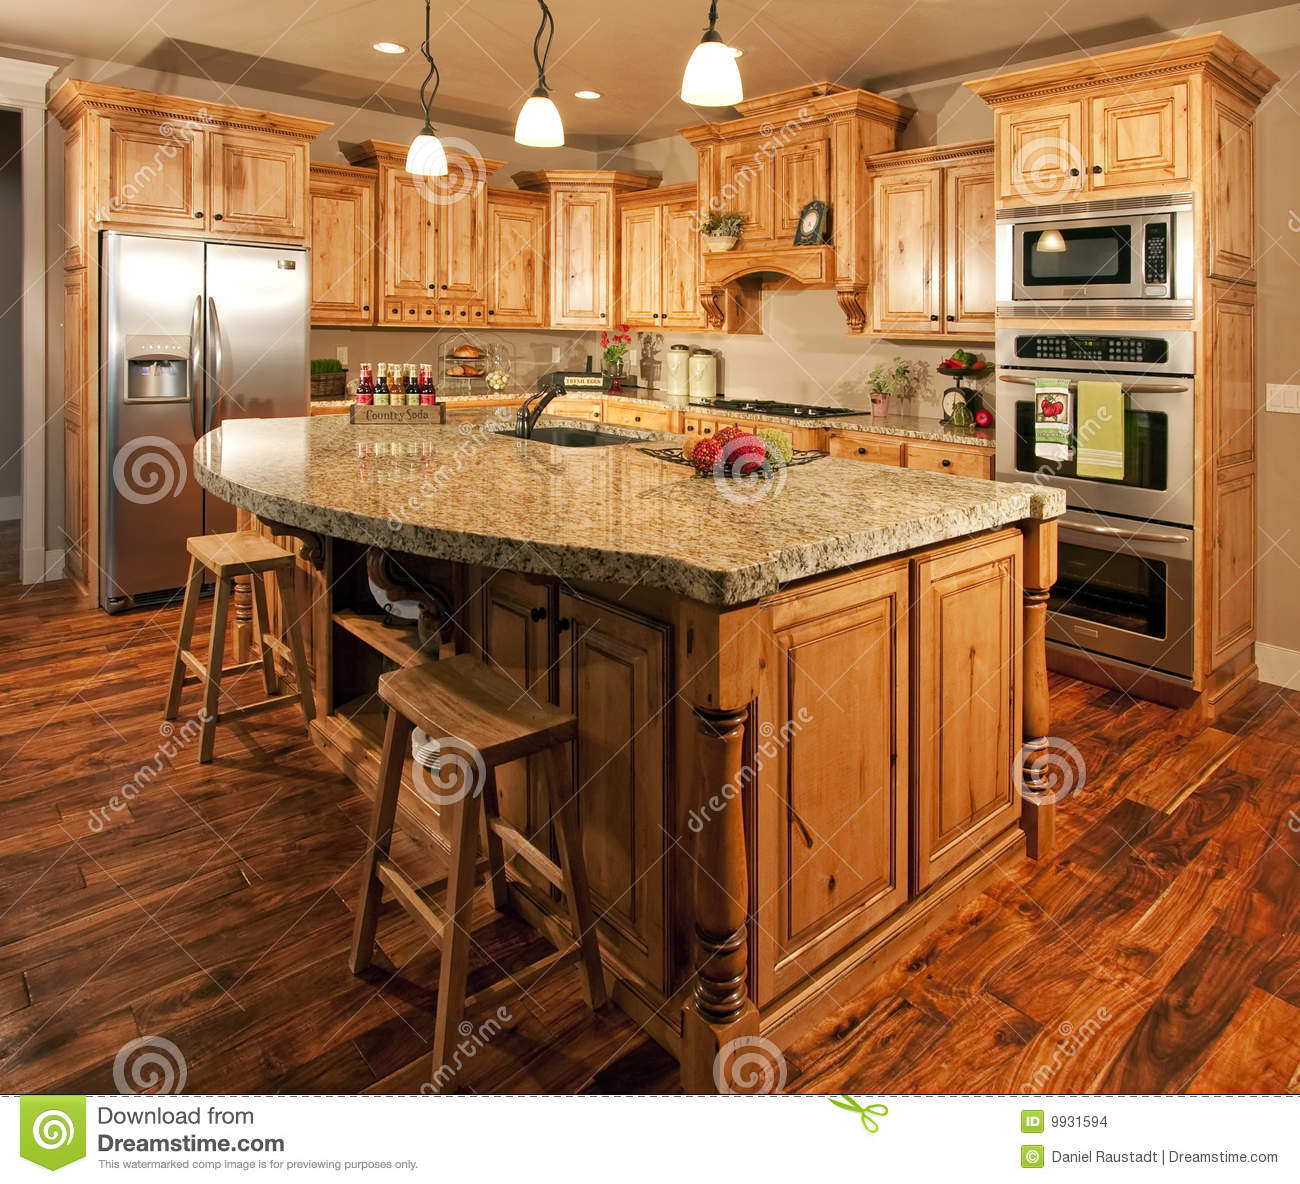 Modern Home Kitchen Center Island Stock Photo - Image of ...